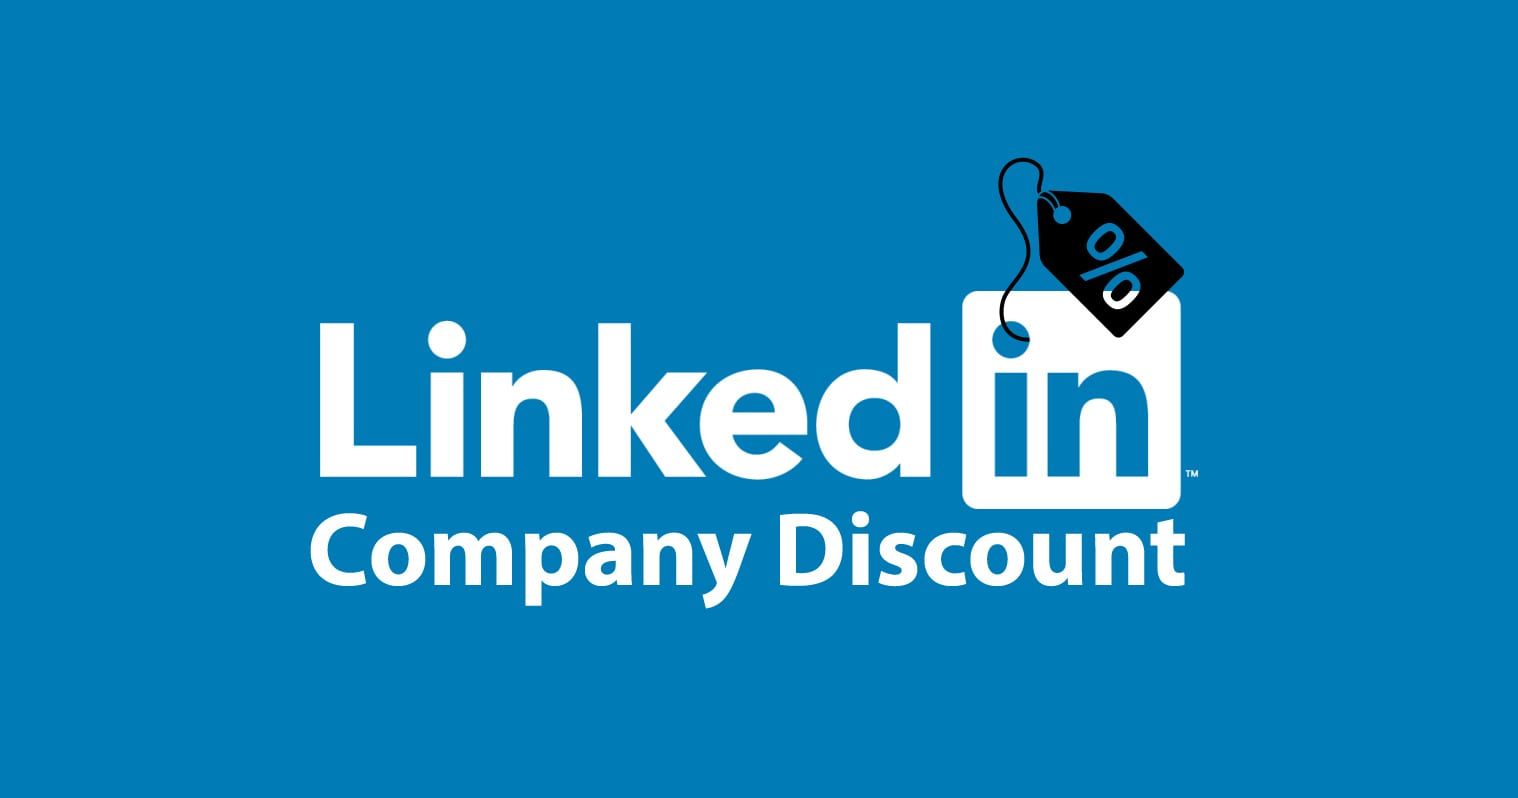 linked in company discount